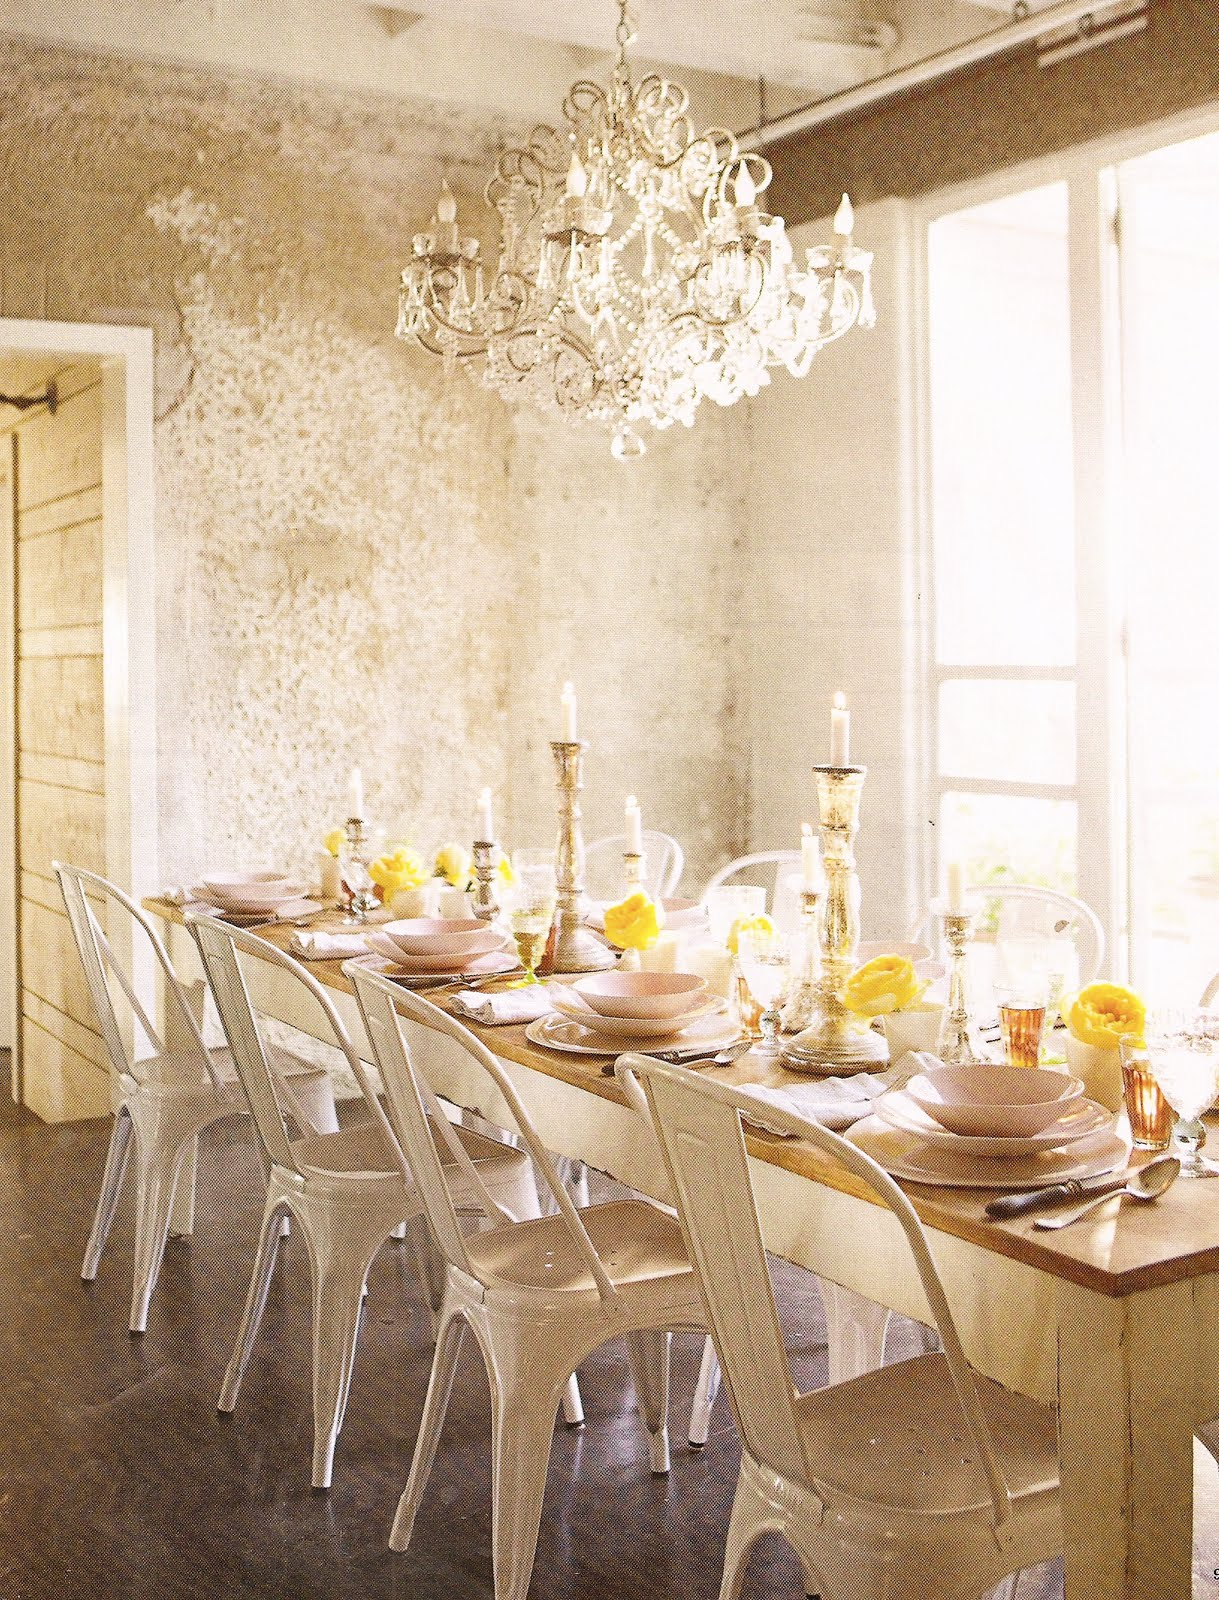 Marsha harris scott splenderosa alexander mcqueen for The dining room leigh